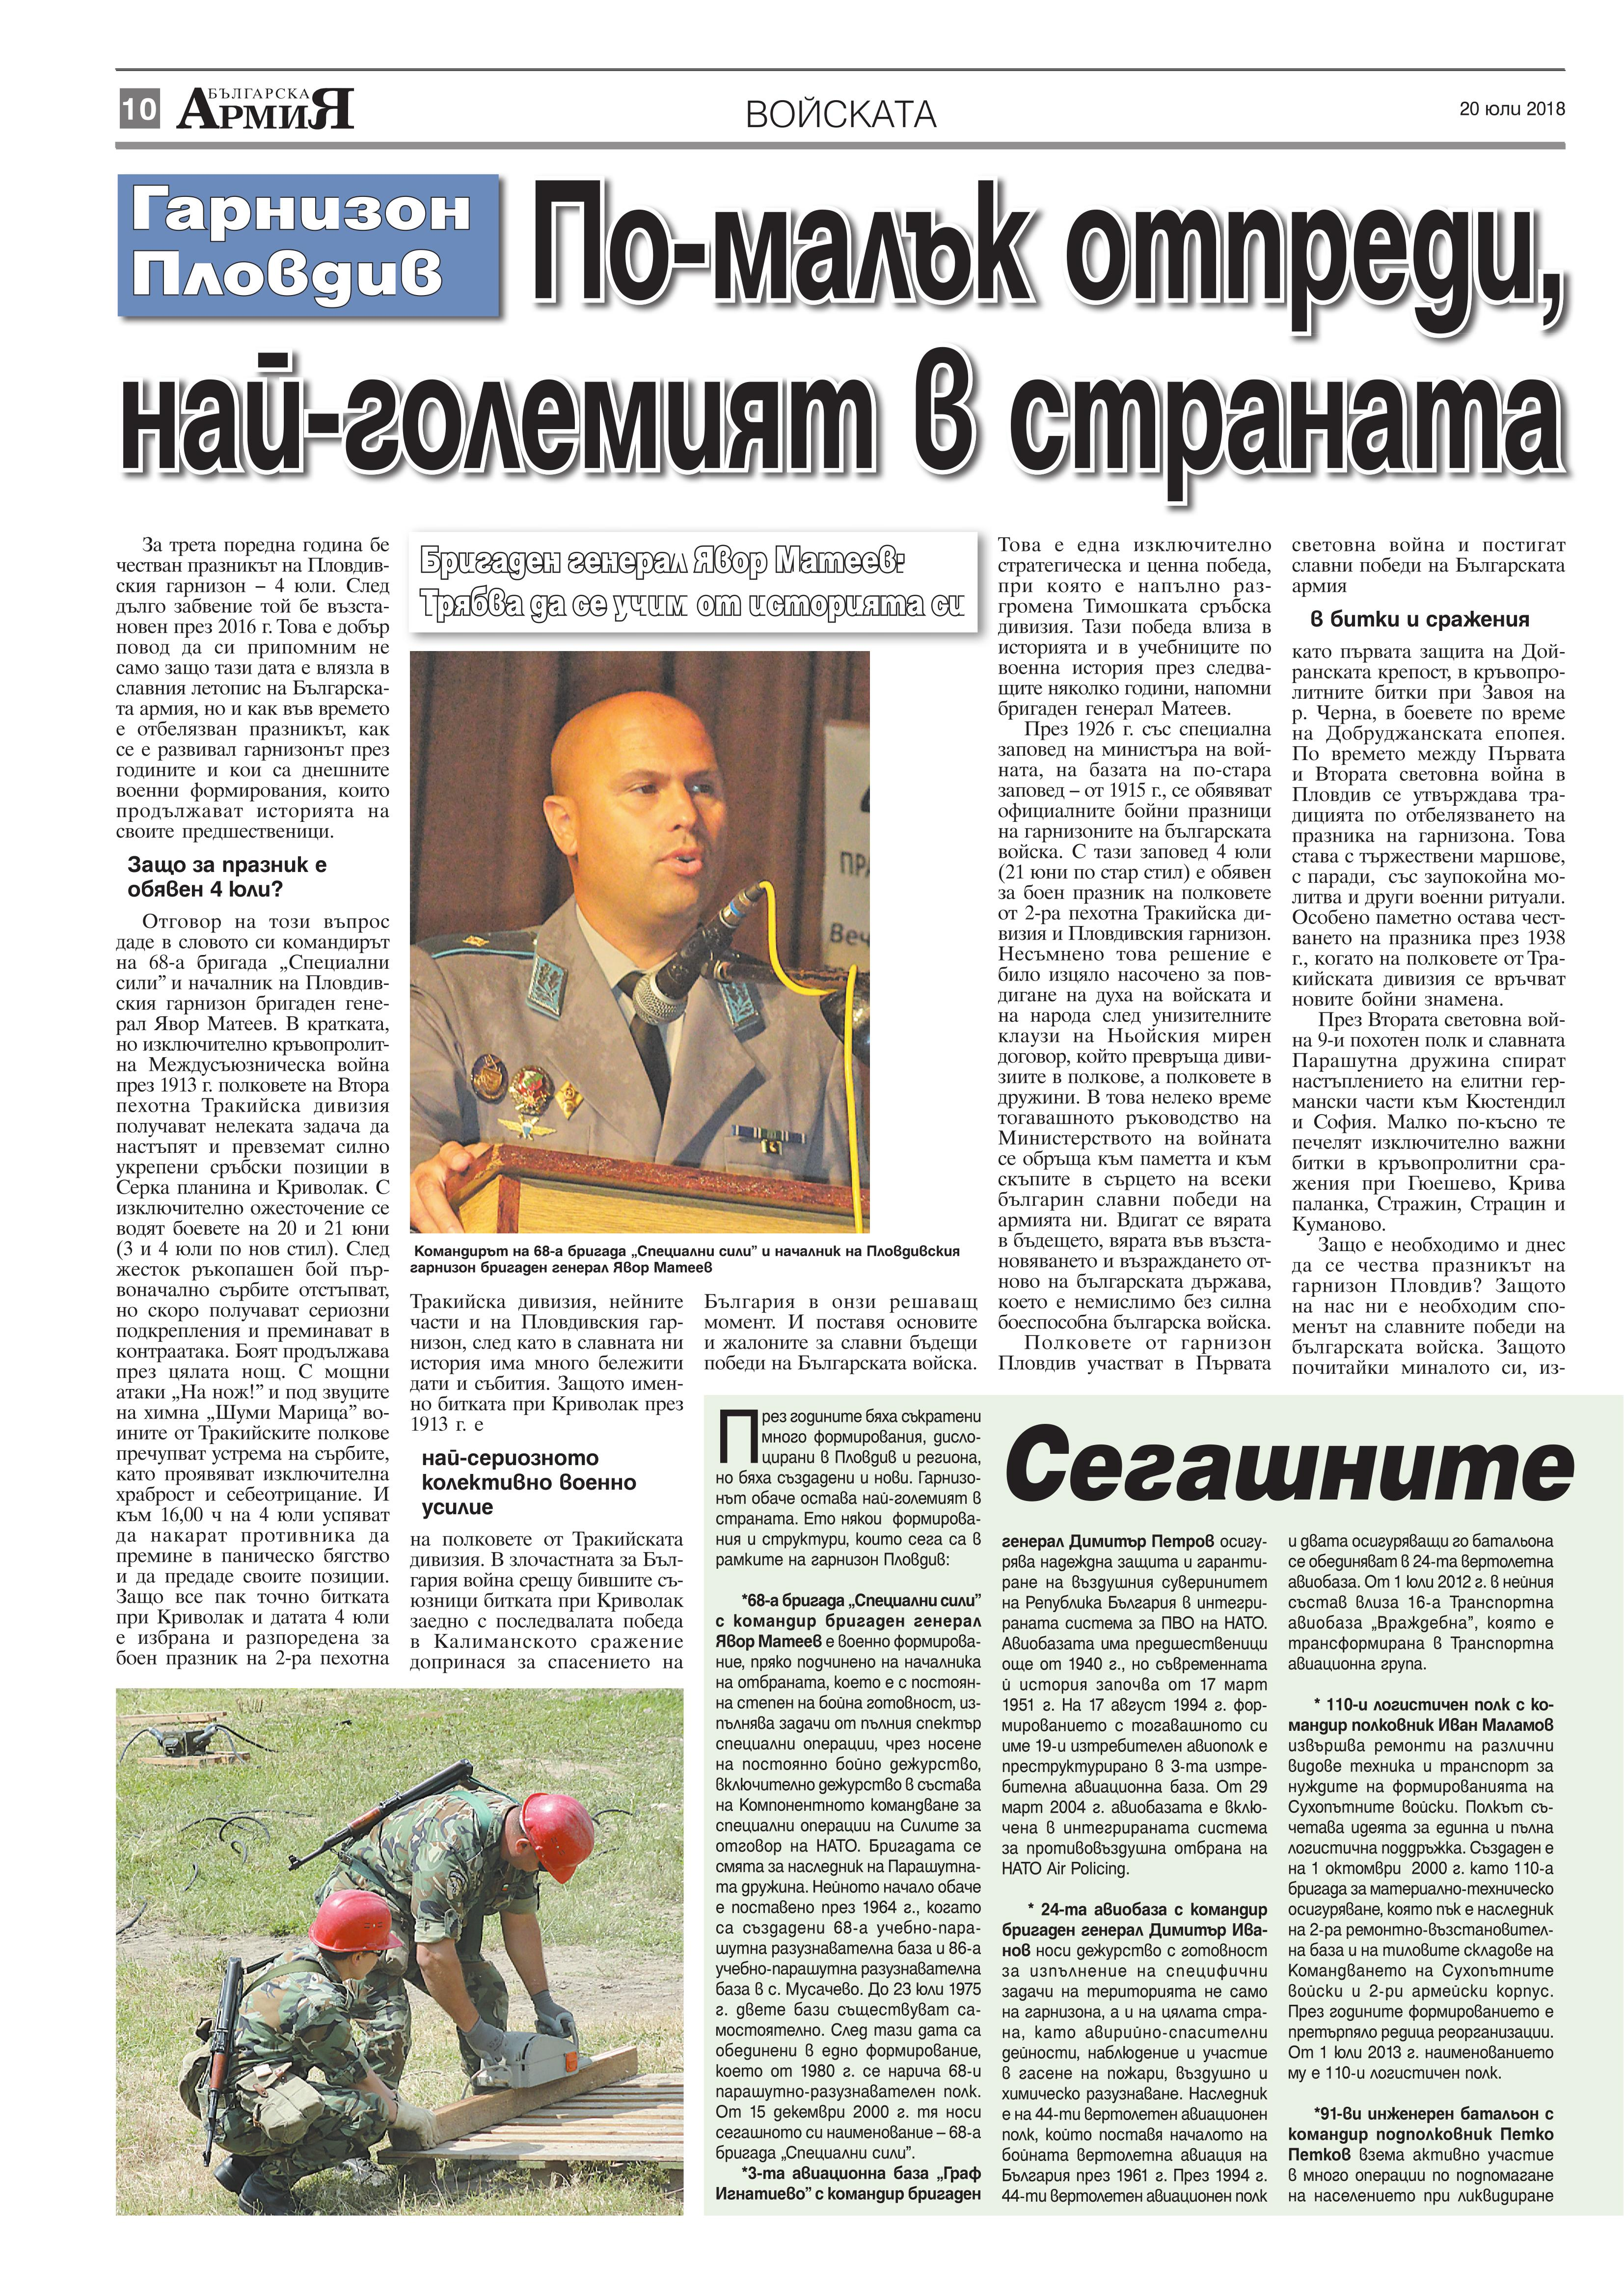 http://armymedia.bg/wp-content/uploads/2015/06/10.page1_-59.jpg